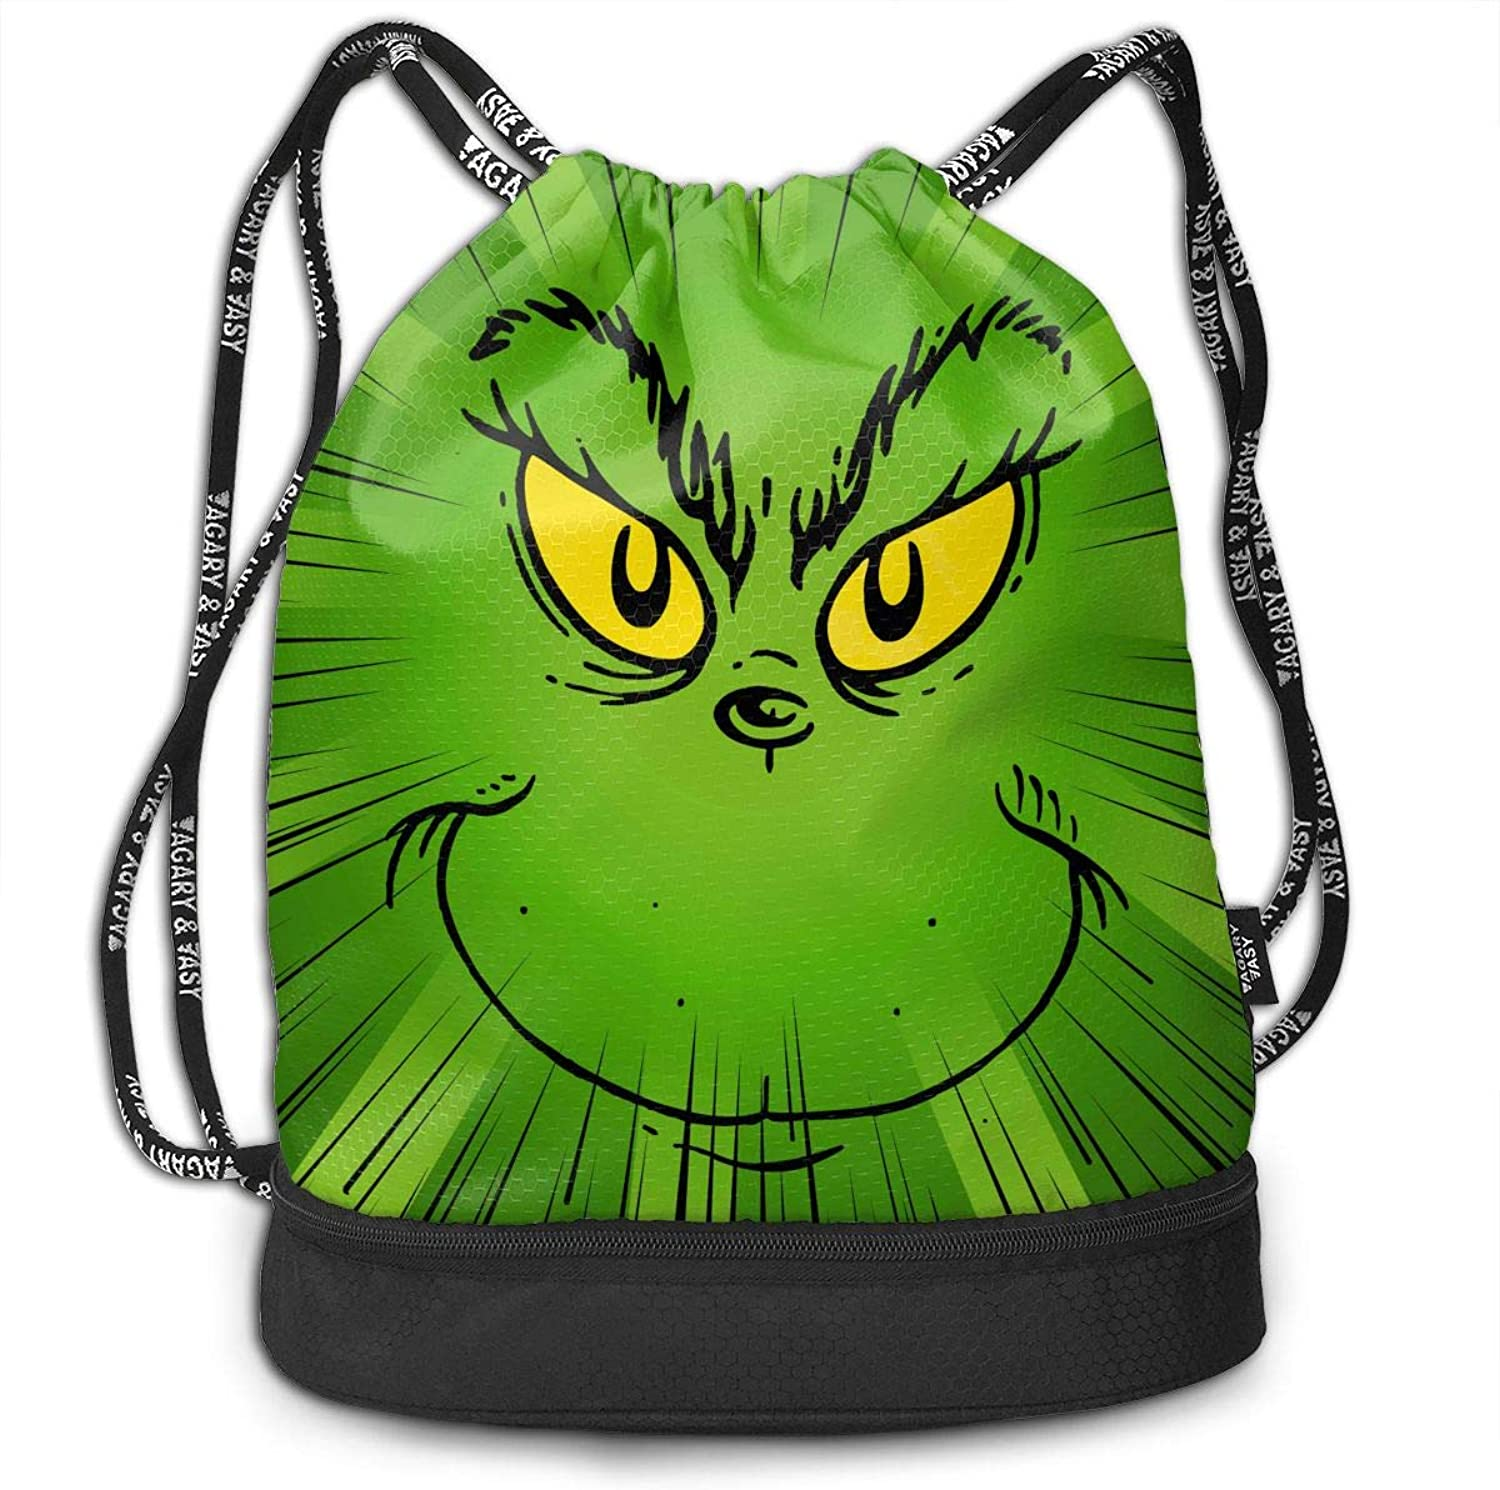 PSnsnX Backpack The Grinch Stole Christmas Sports Gym Cinch Sack Bag for Kids Gym Sackpack Dance Bag